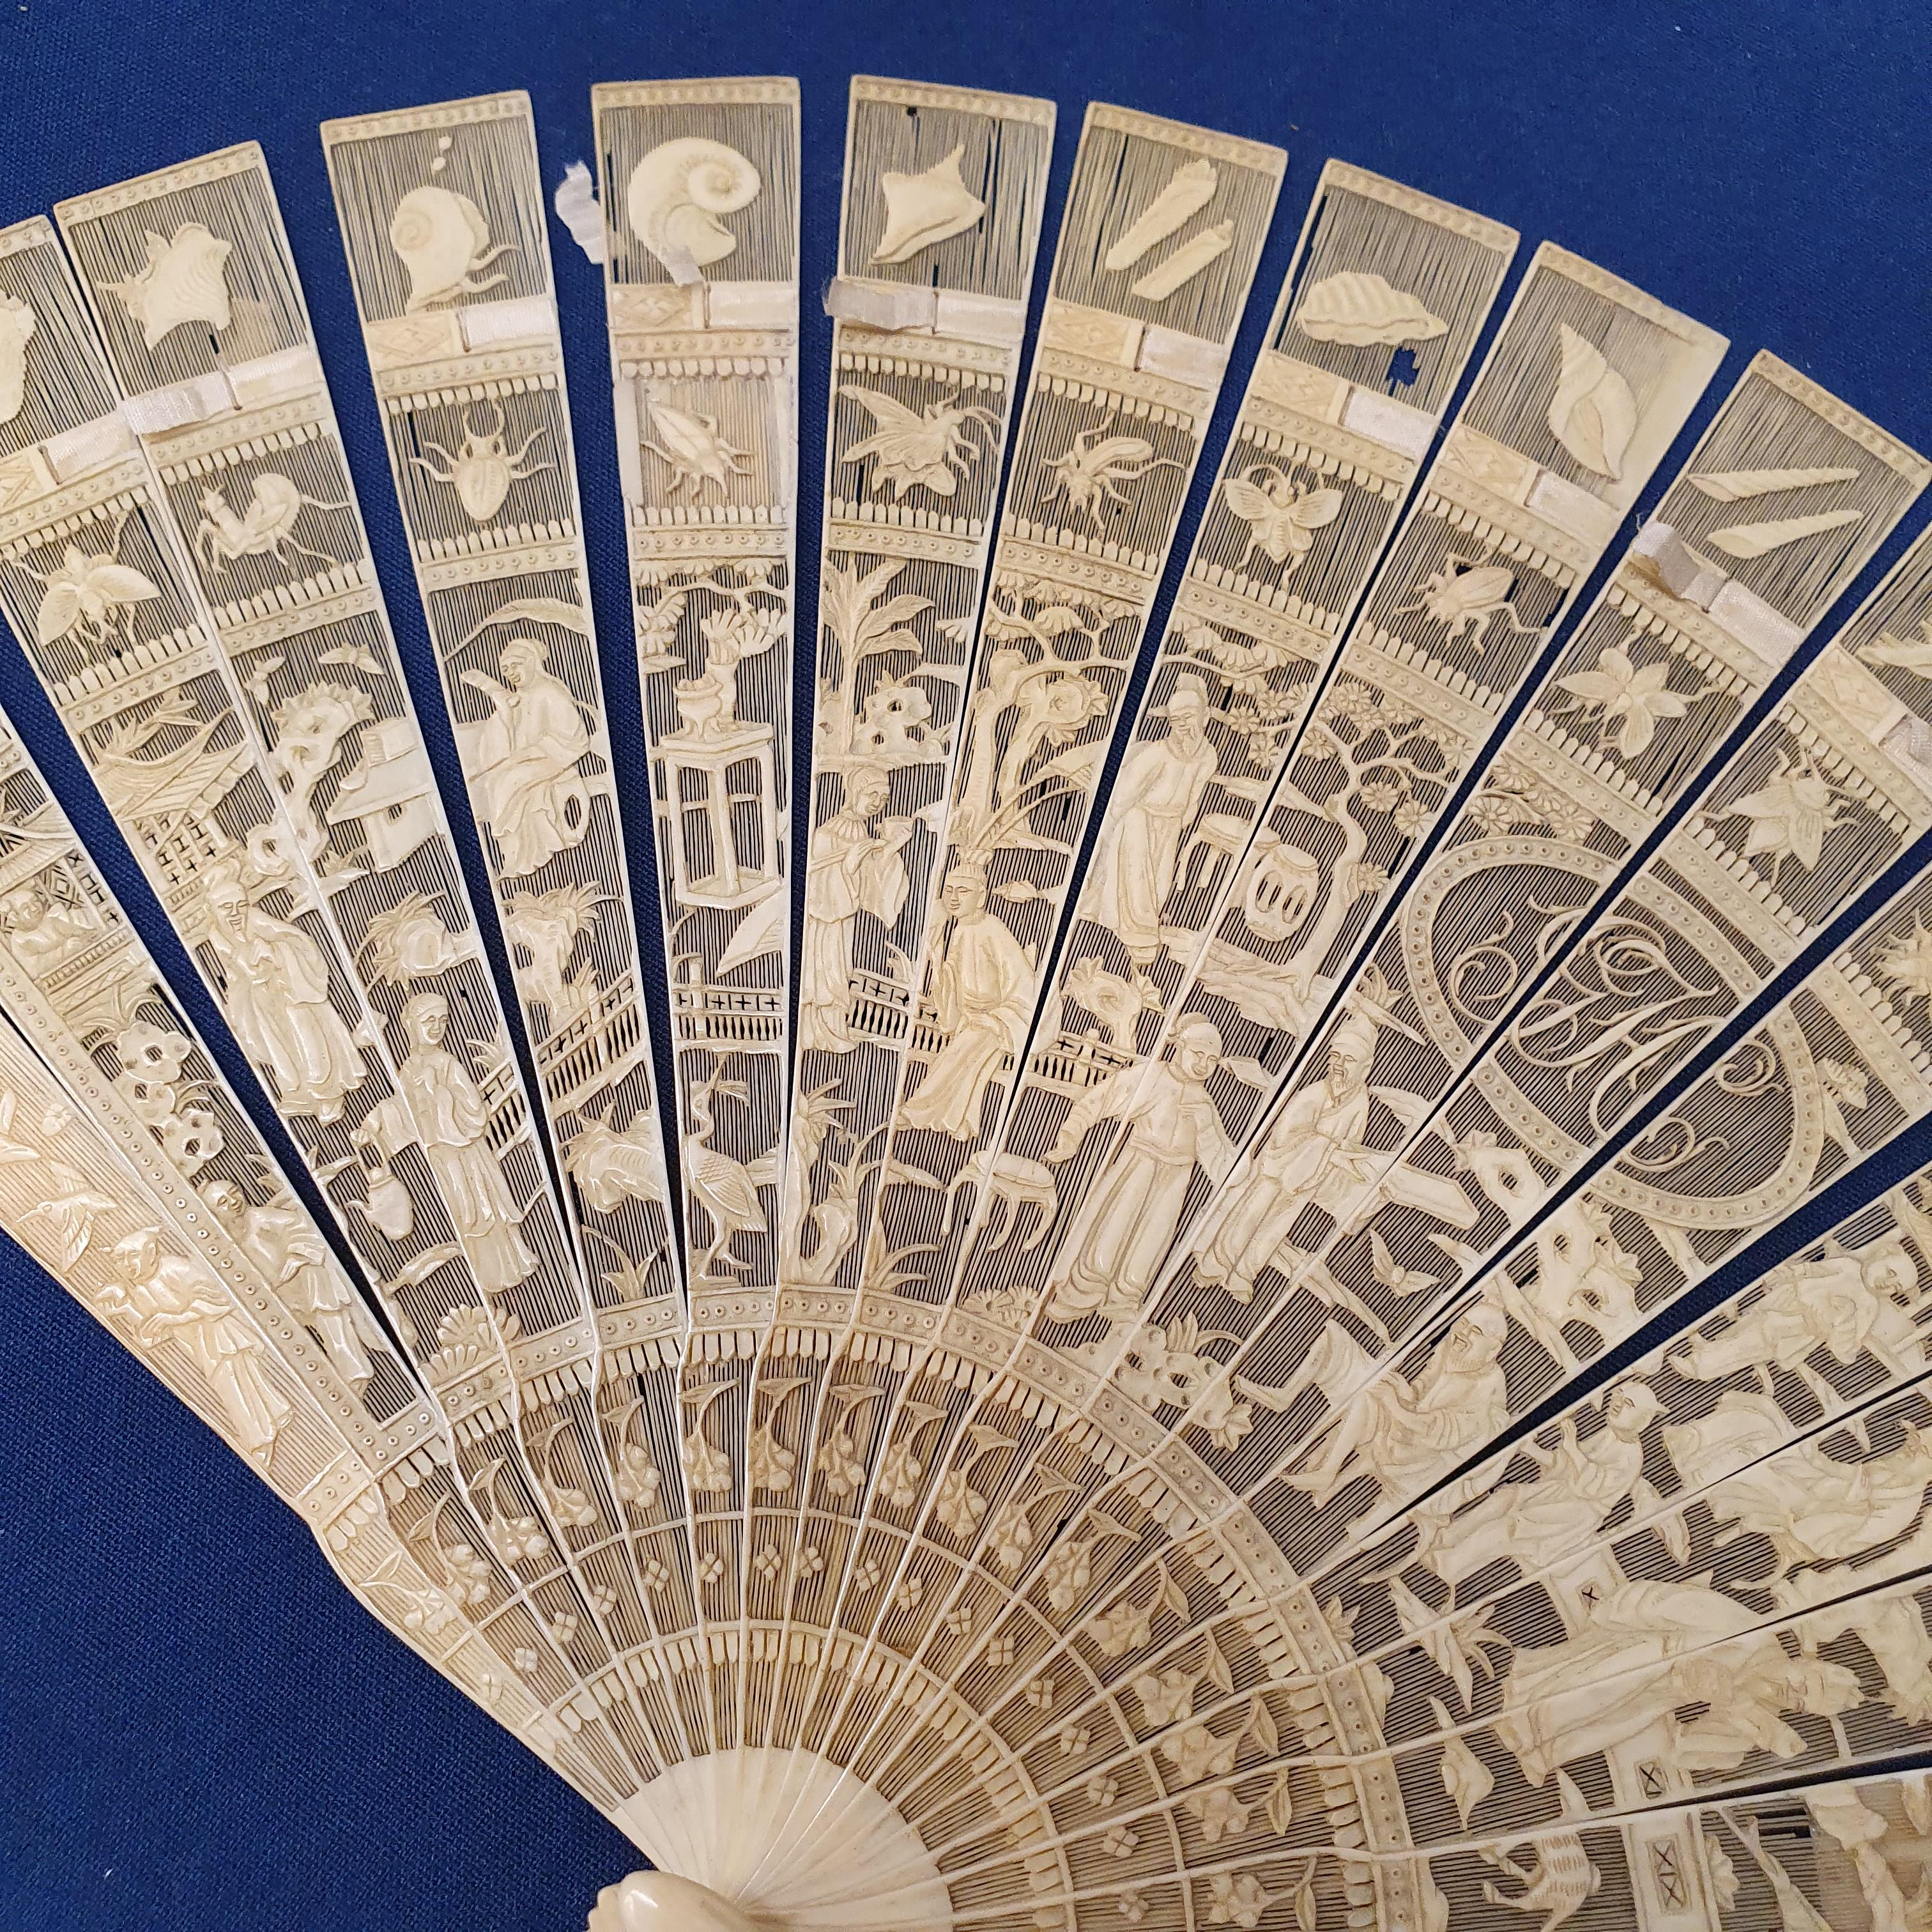 A Chinese ivory brisee fan, two others, and a similar fan with silk embroidered decoration, in a - Image 8 of 47